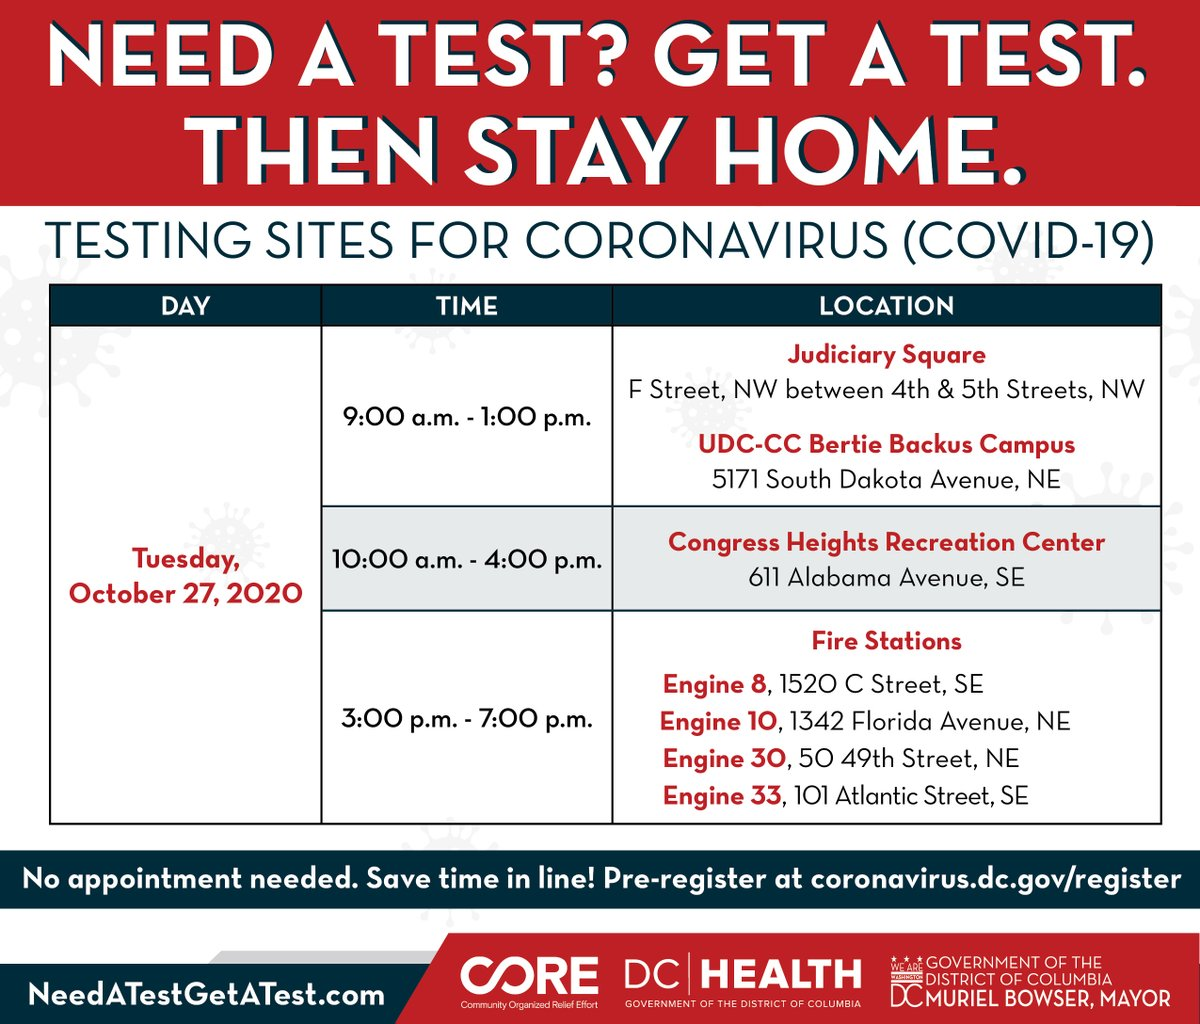 Here are today's testing sites.  -If you have a symptom, stay home and call your doctor. -If your doctor isn't available or cannot give you a COVID-19 test, visit a free public testing site near you. -Stay home while you await results. https://t.co/b5makMoYP0